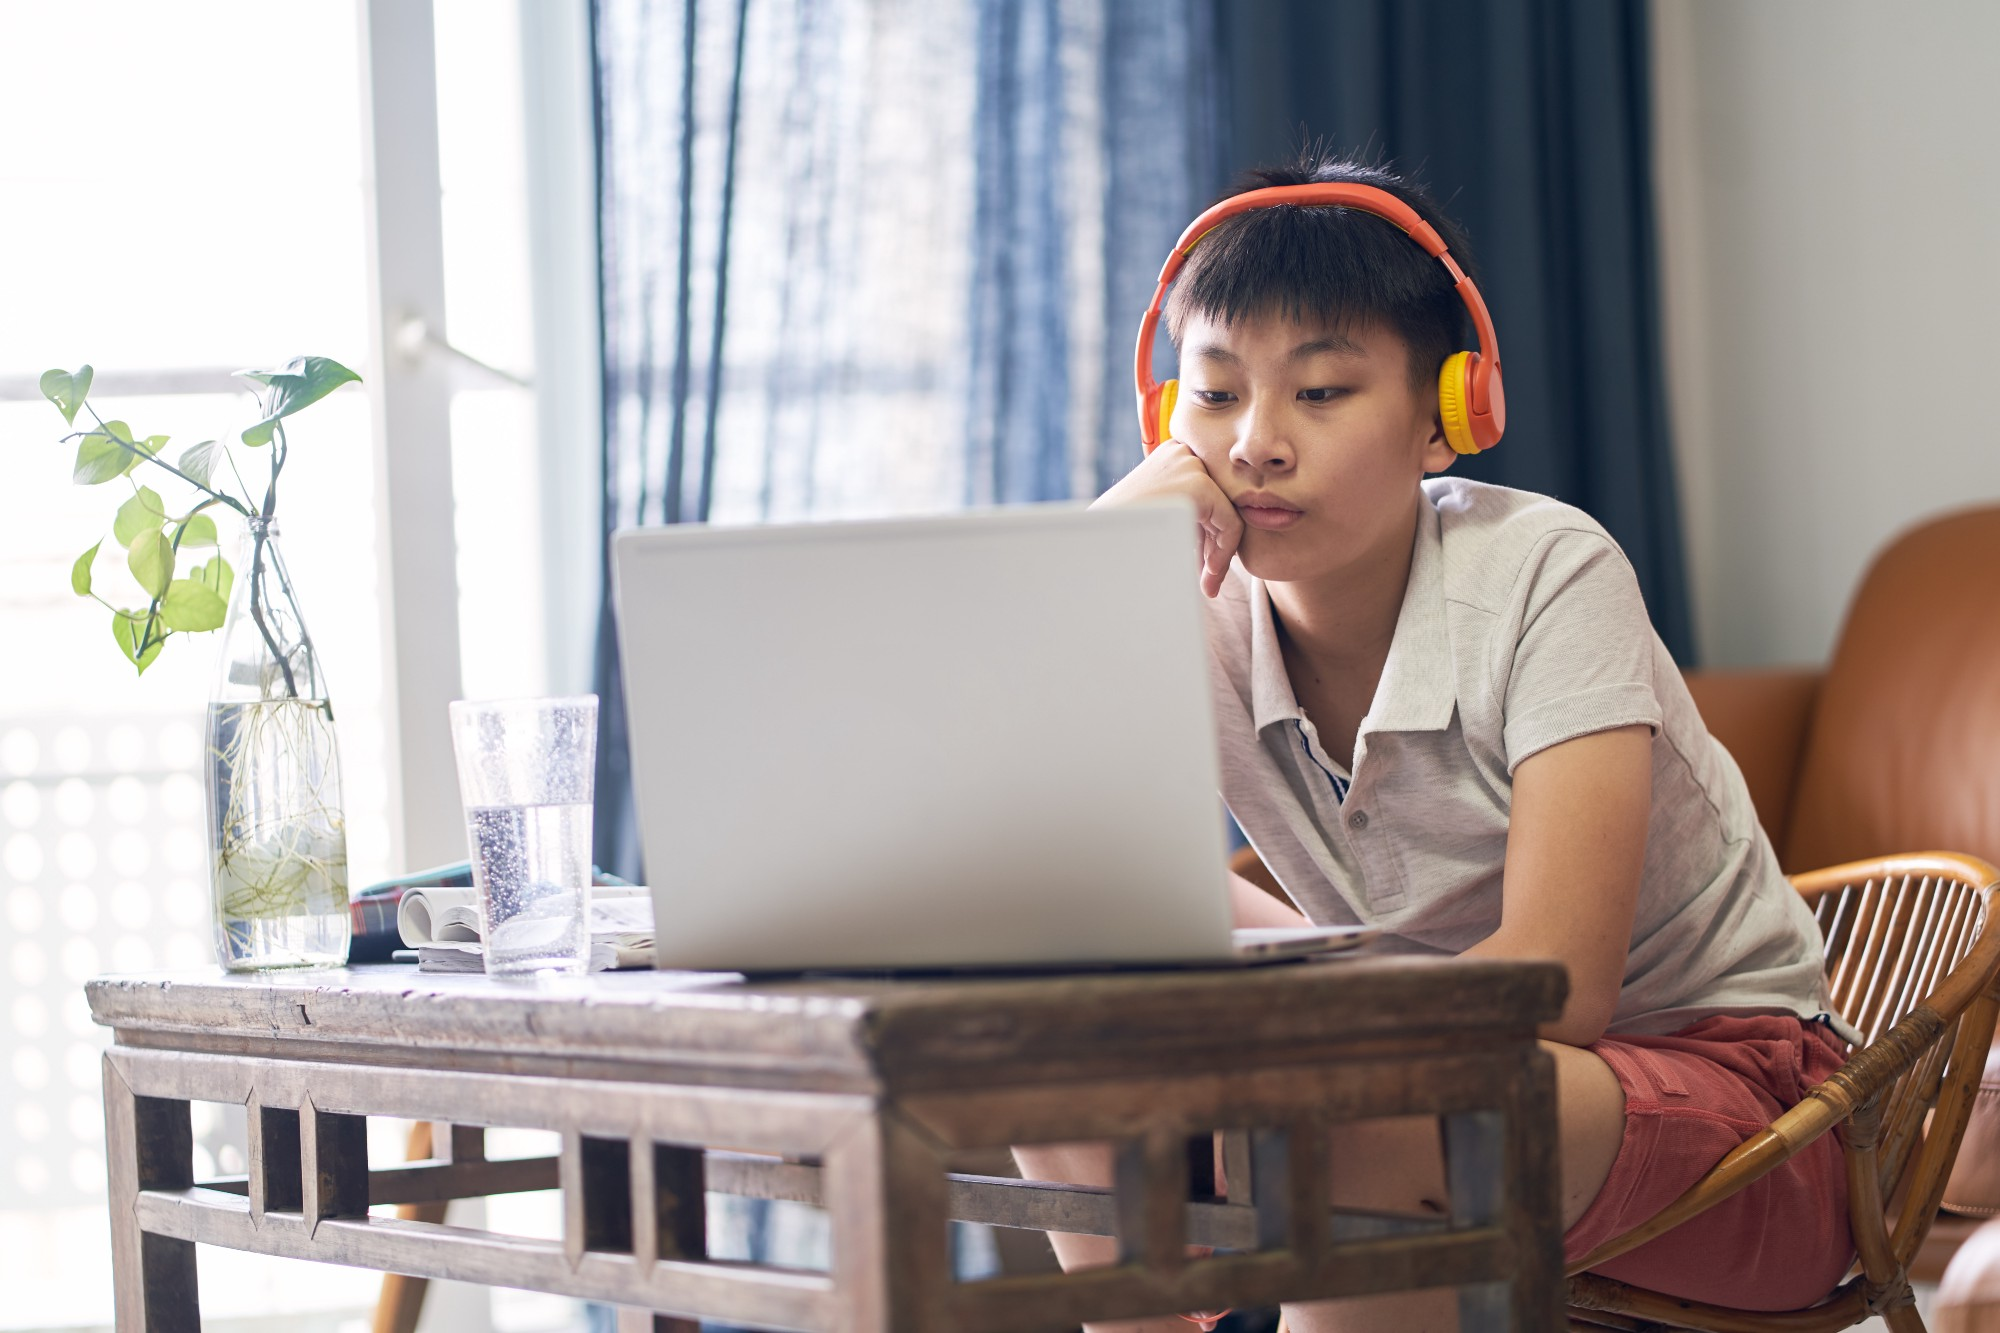 Young Asian boy using a laptop and headphones. Photo by allensima/Getty Images